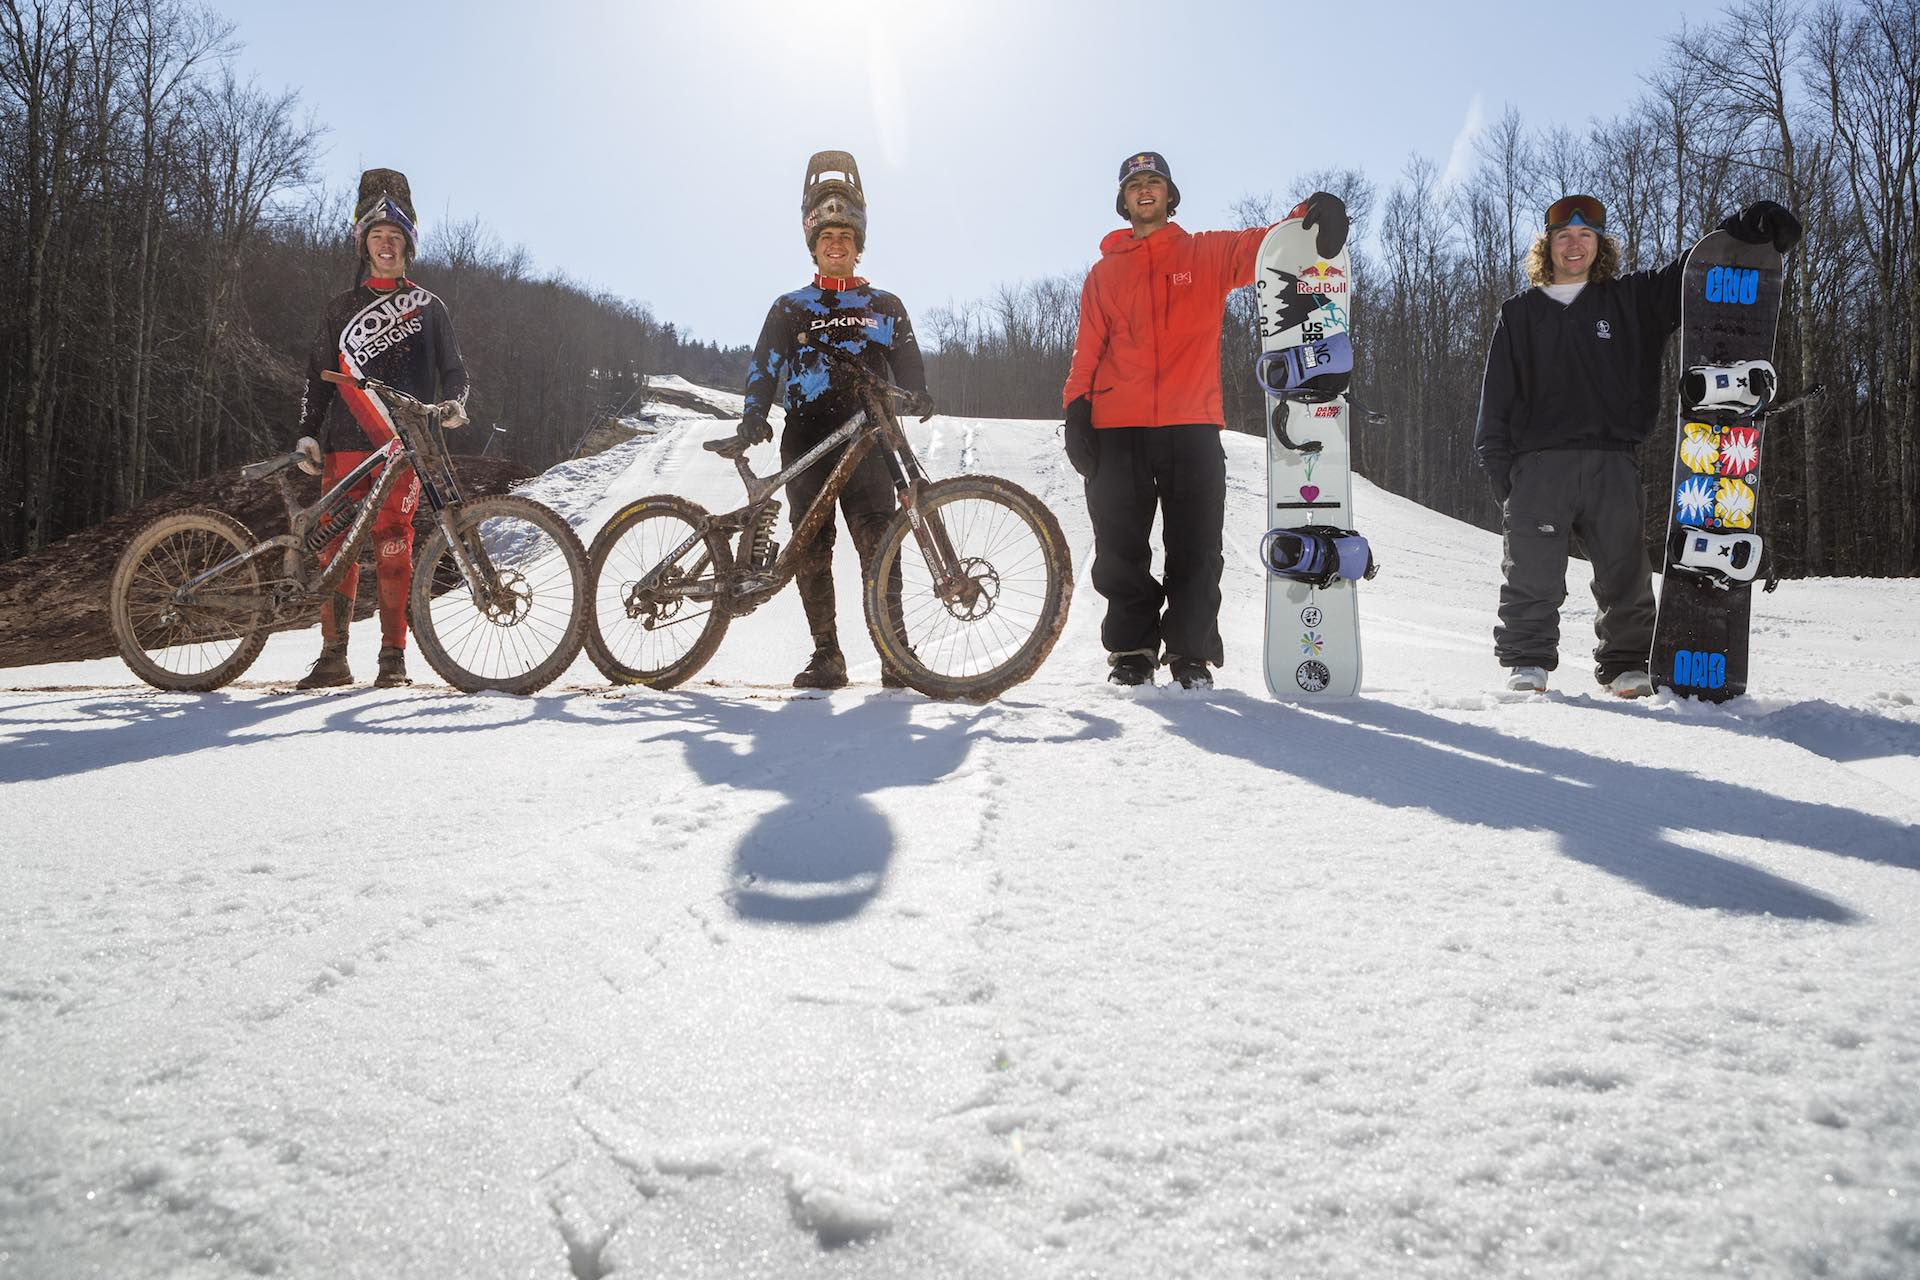 Mountain bike snowboard Red Bull Last Chair First Run Snowshoe, West Virginia11